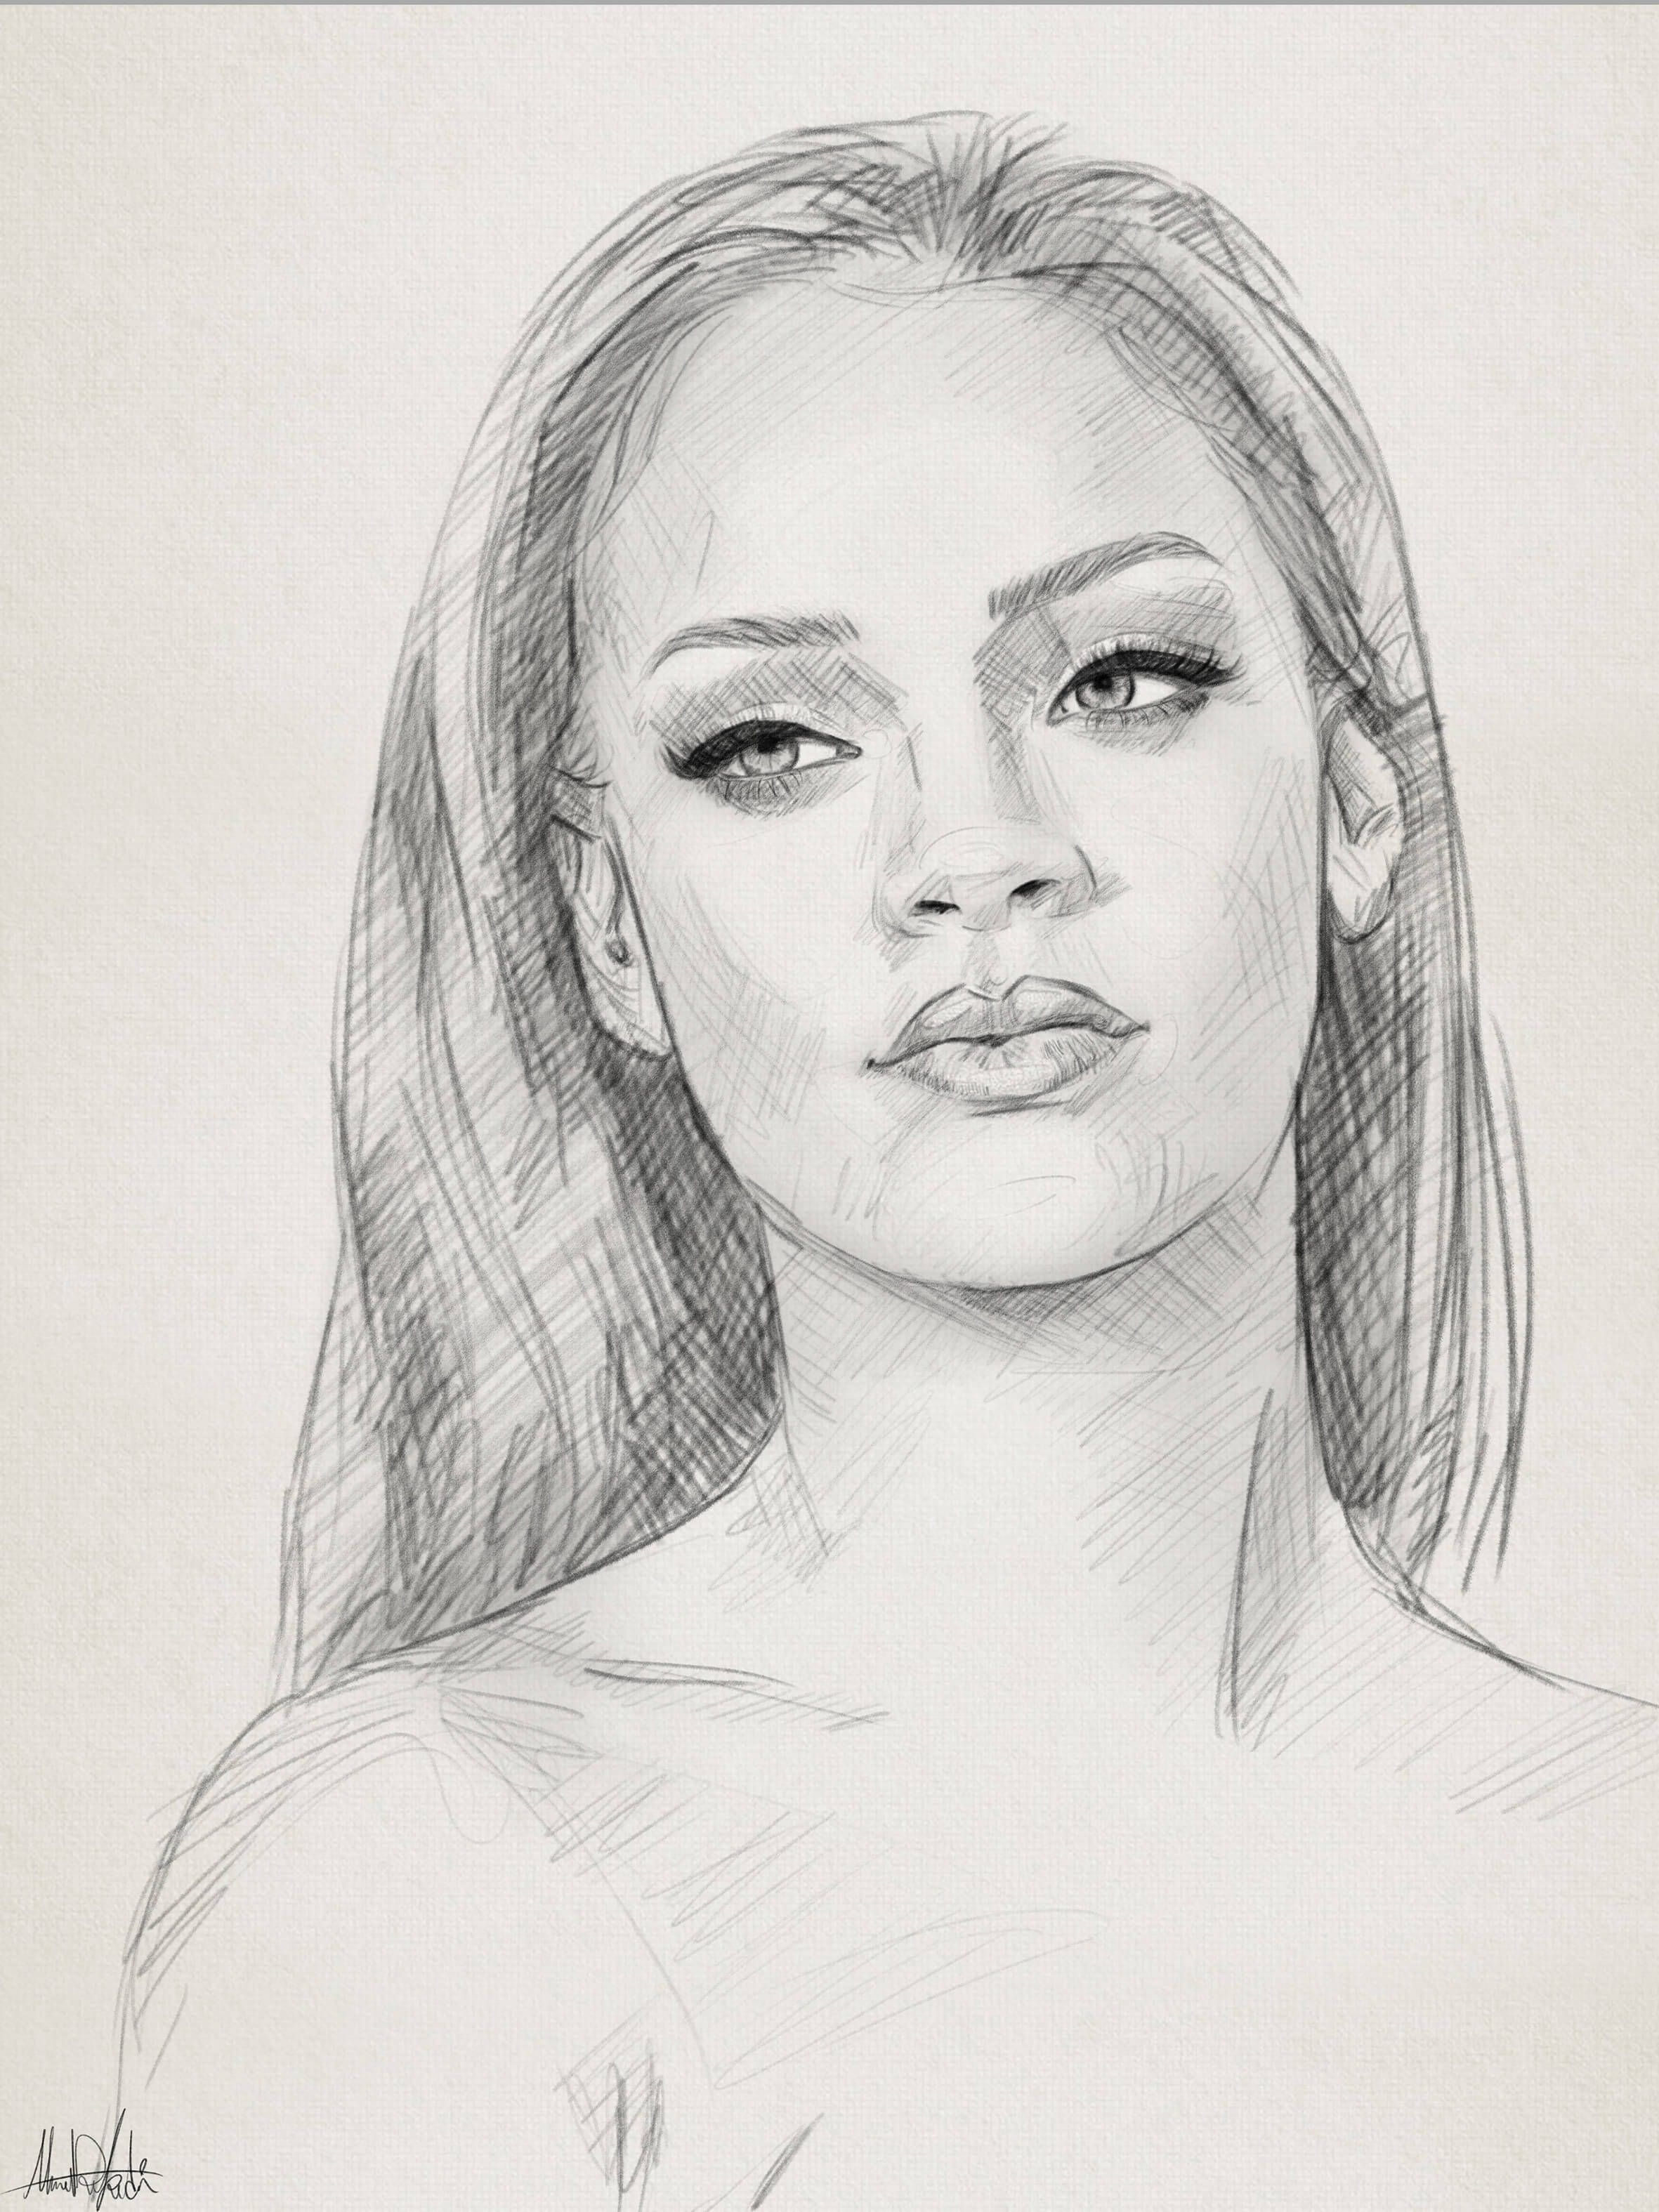 Pencil portrait mastery pencil sketch drawing portrait of rihanna by ahmad kadi discover the secrets of drawing realistic pencil portraits